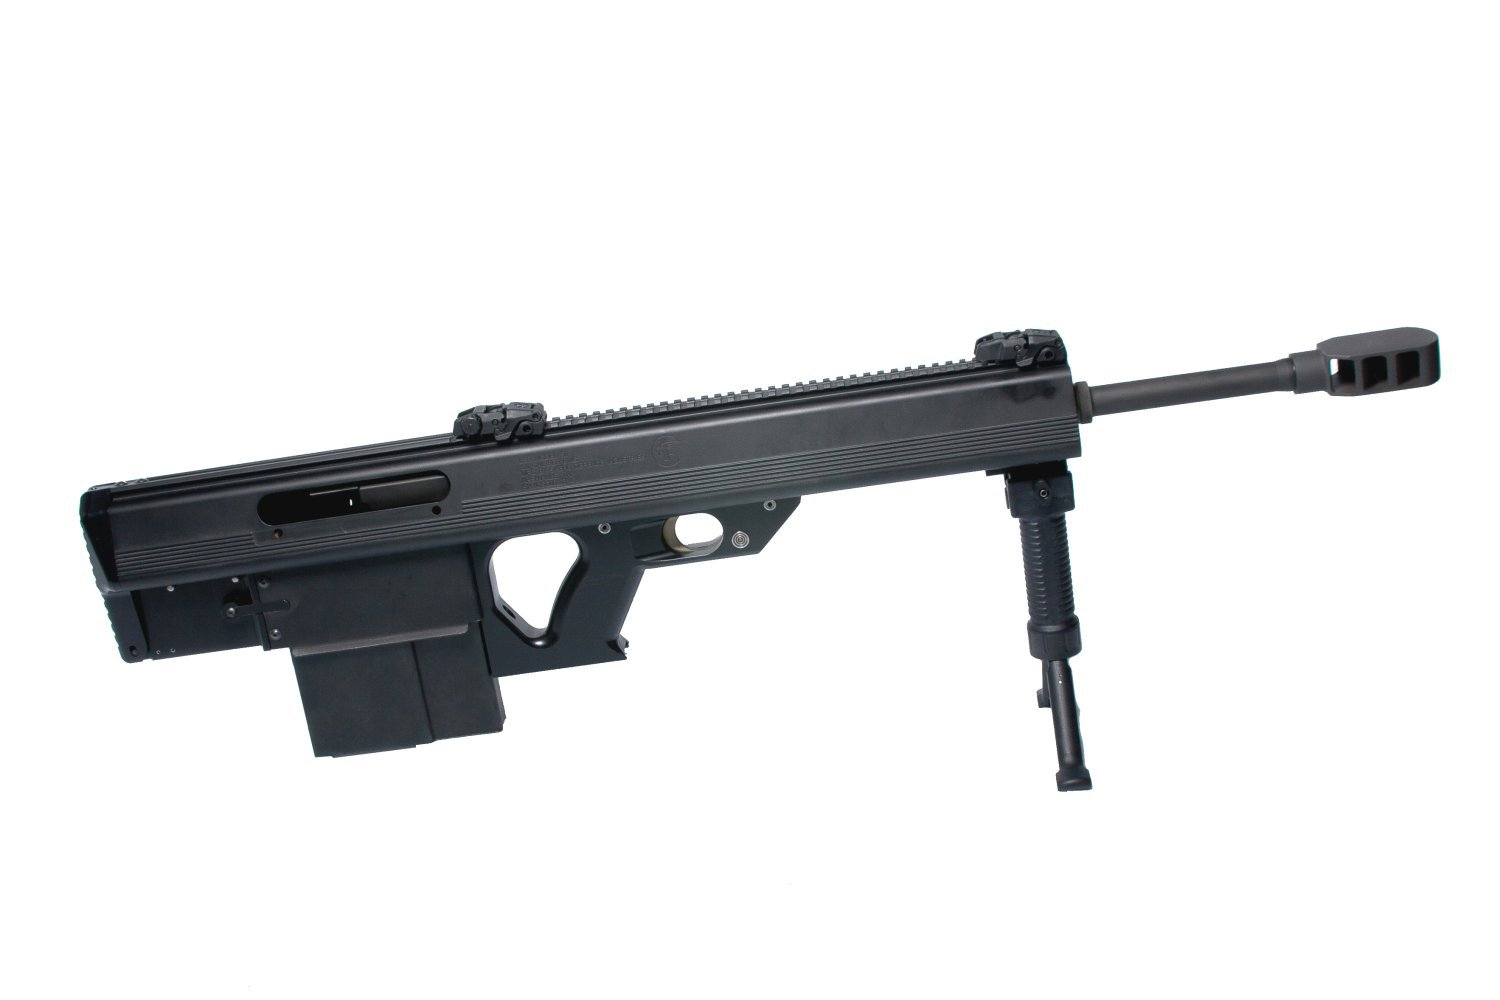 Leader 50 BMG Semi Auto Bullpup .50 BMG Anti Materiel Sniper Rifle Glamour Shot 2 <!  :en  >Leader 50 BMG Revolutionary Ultra Compact and Lightweight Semi Auto Bullpup .50 BMG (12.7x99mm NATO) Anti Materiel/Sniper Rifle for Military Special Operations Forces (SOF) and Civilian Tactical Shooters: Coming Soon to a Theater of Operations and Shooting Range Near You? <!  :  >